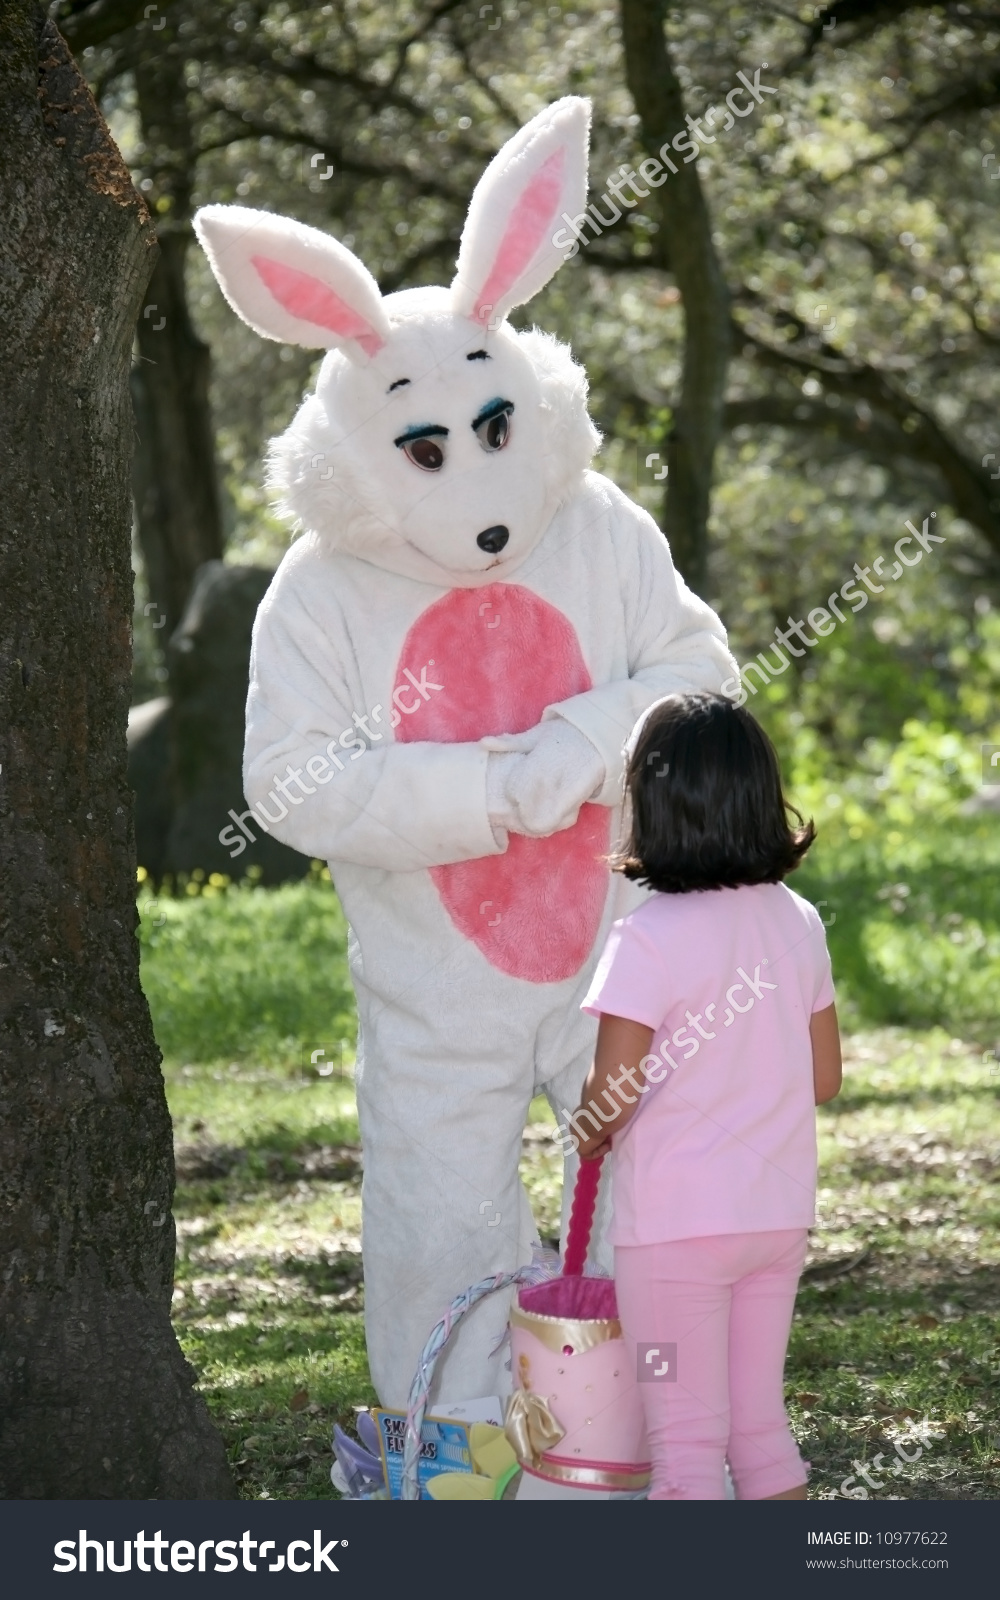 Title: Man in a easter bunny costume with a little girl I feel very uncomfortable with this photo. This guy should be arrested.